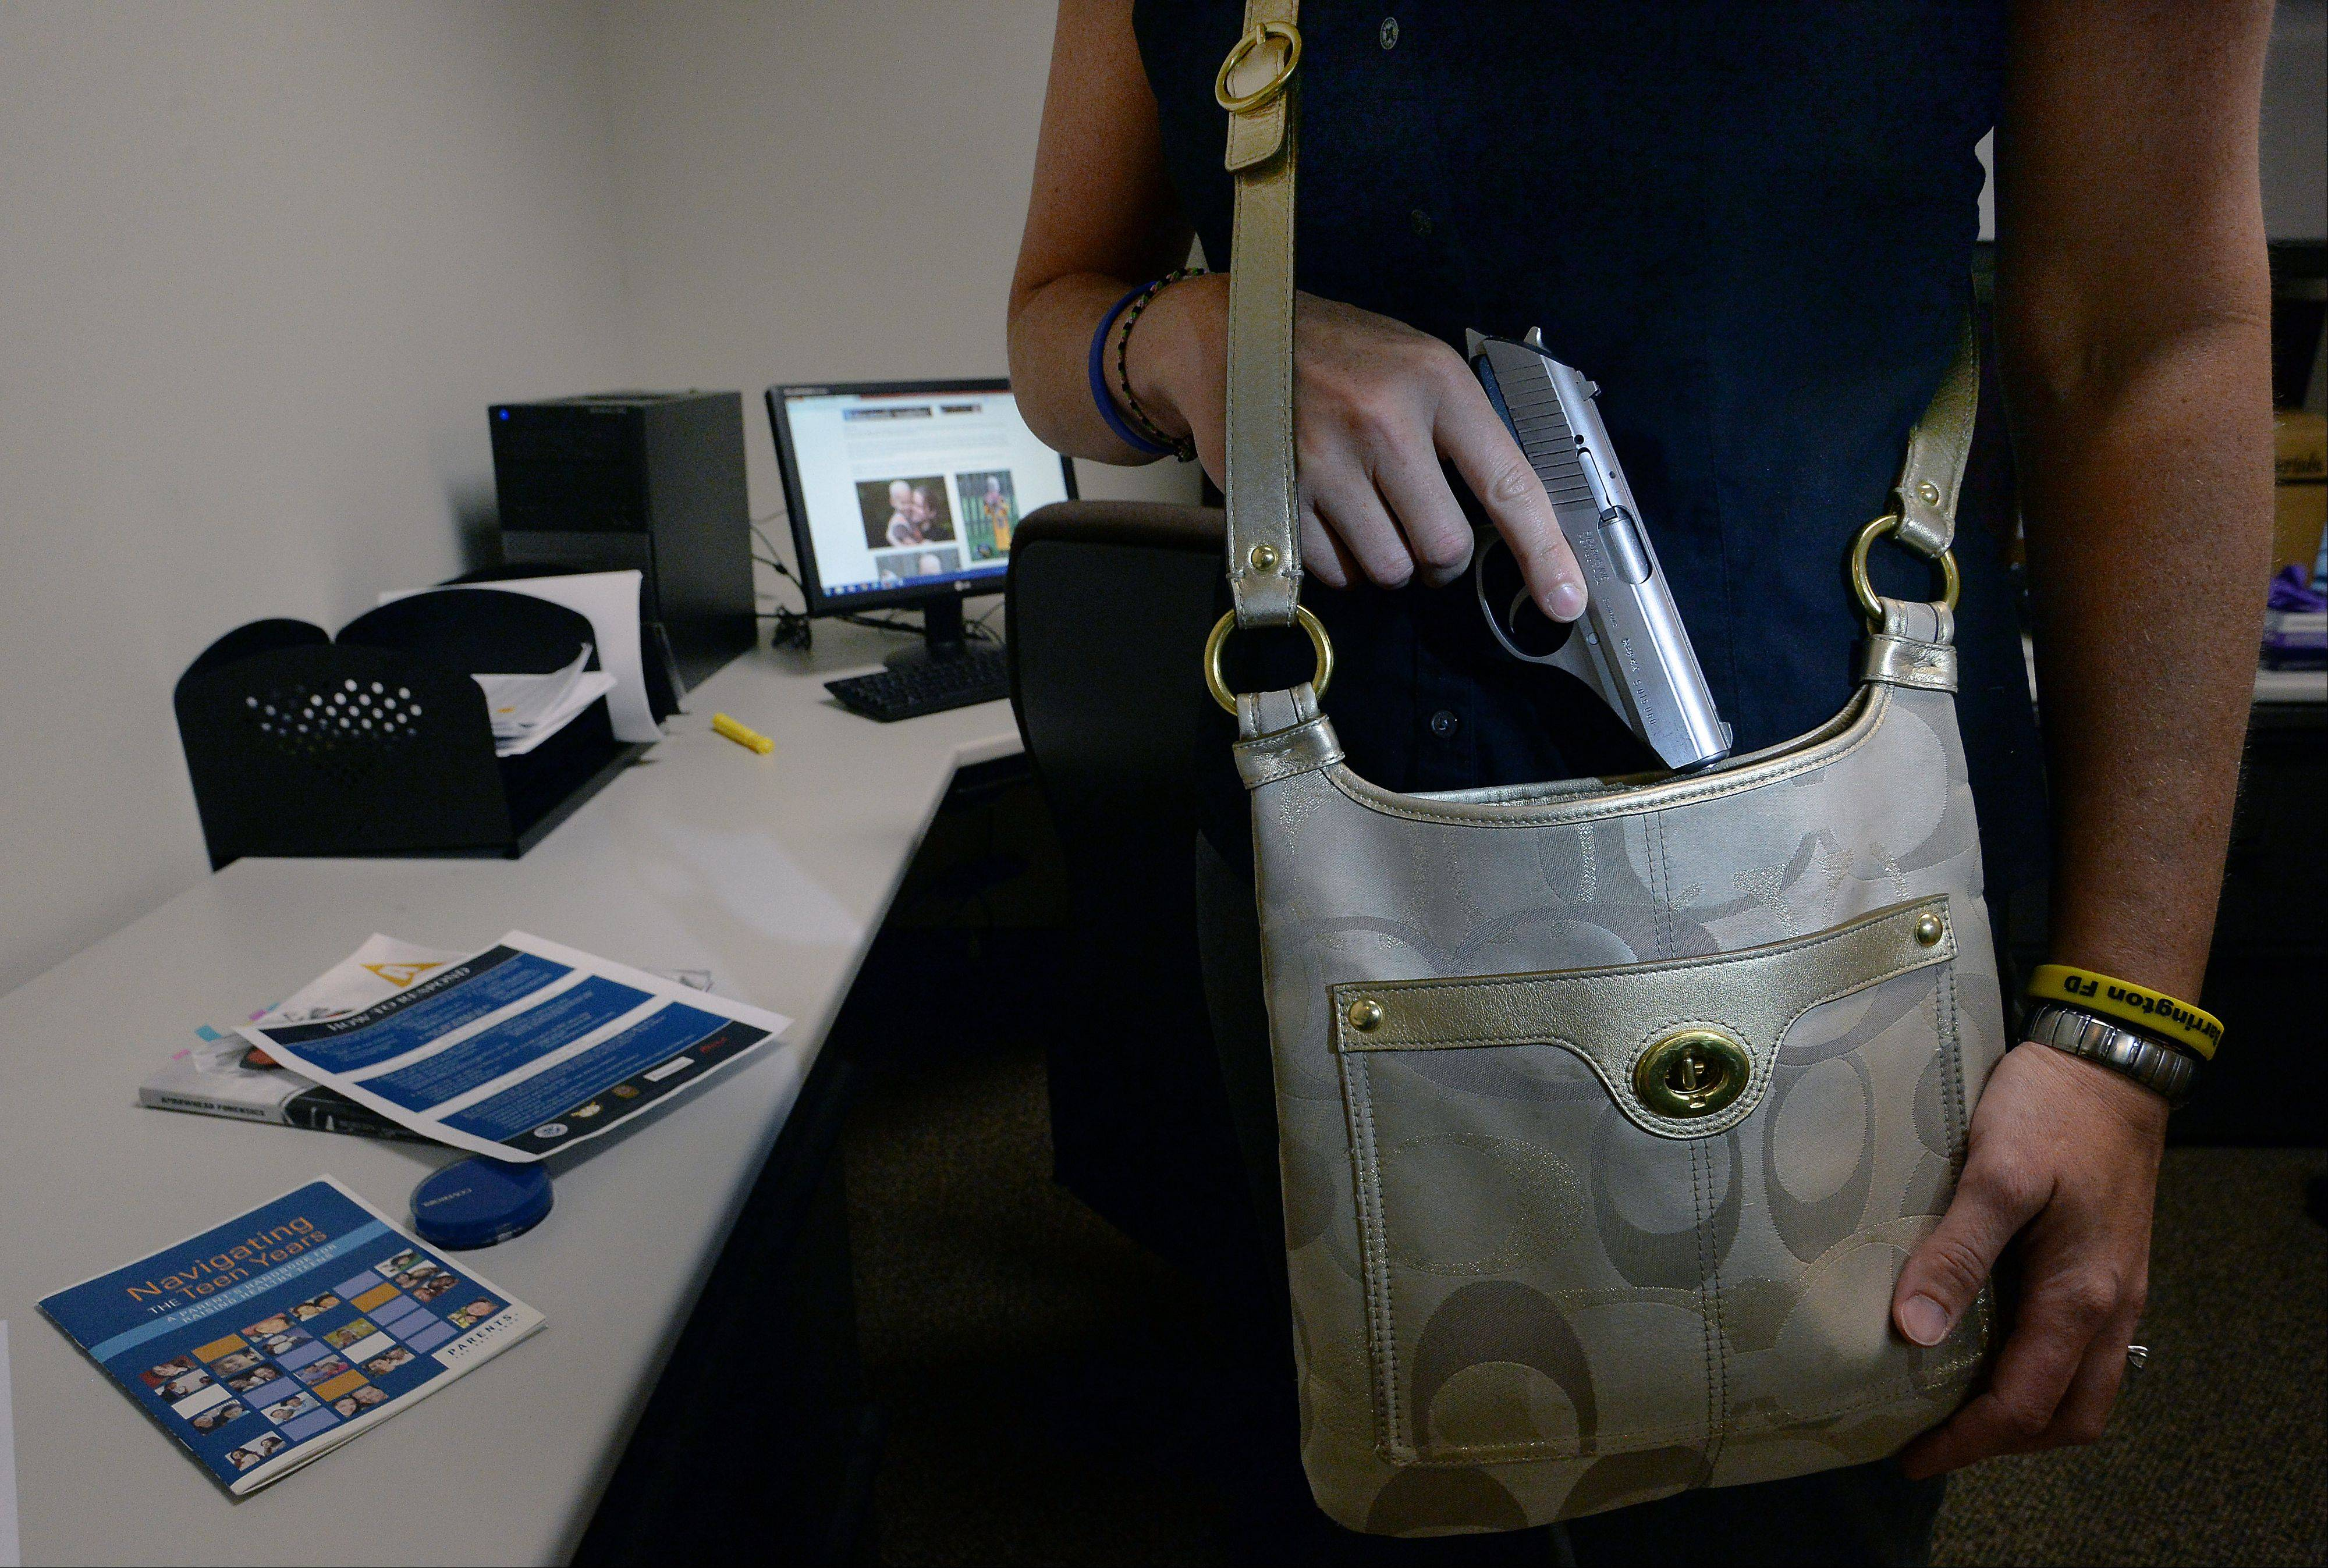 Editorial: Already, concealed carry law needs refinements